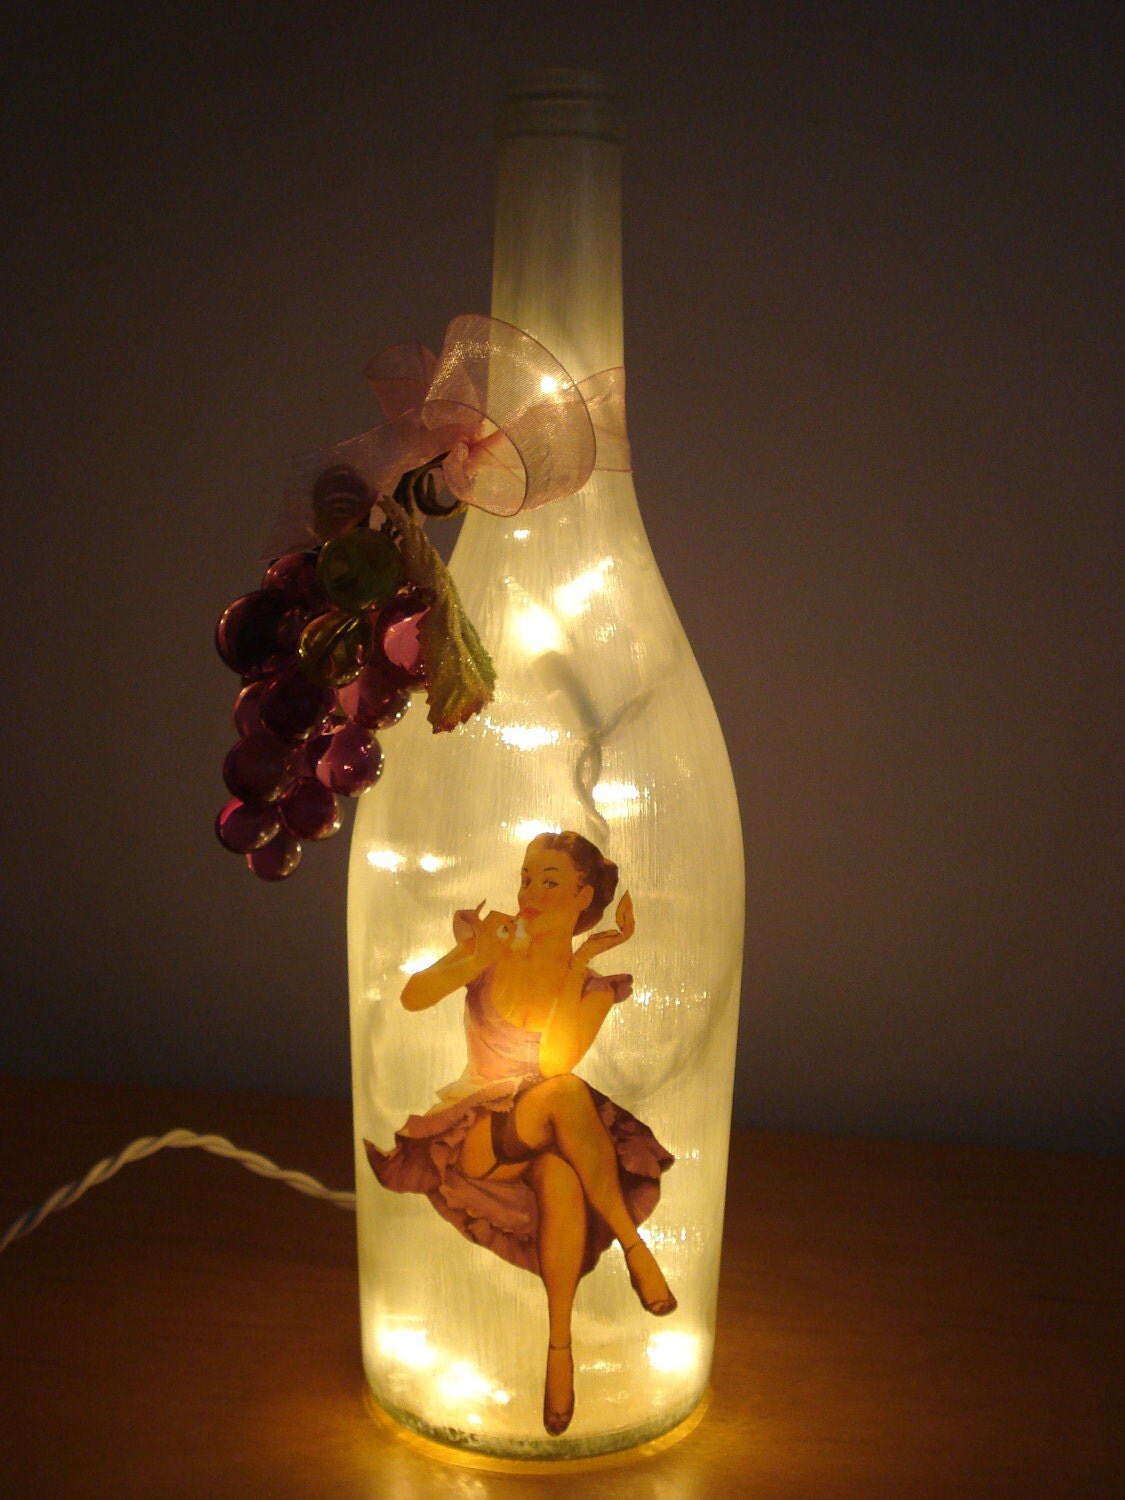 Sexy pin up girl wine bottle decor light by redone4fun on etsy for Light up wine bottles